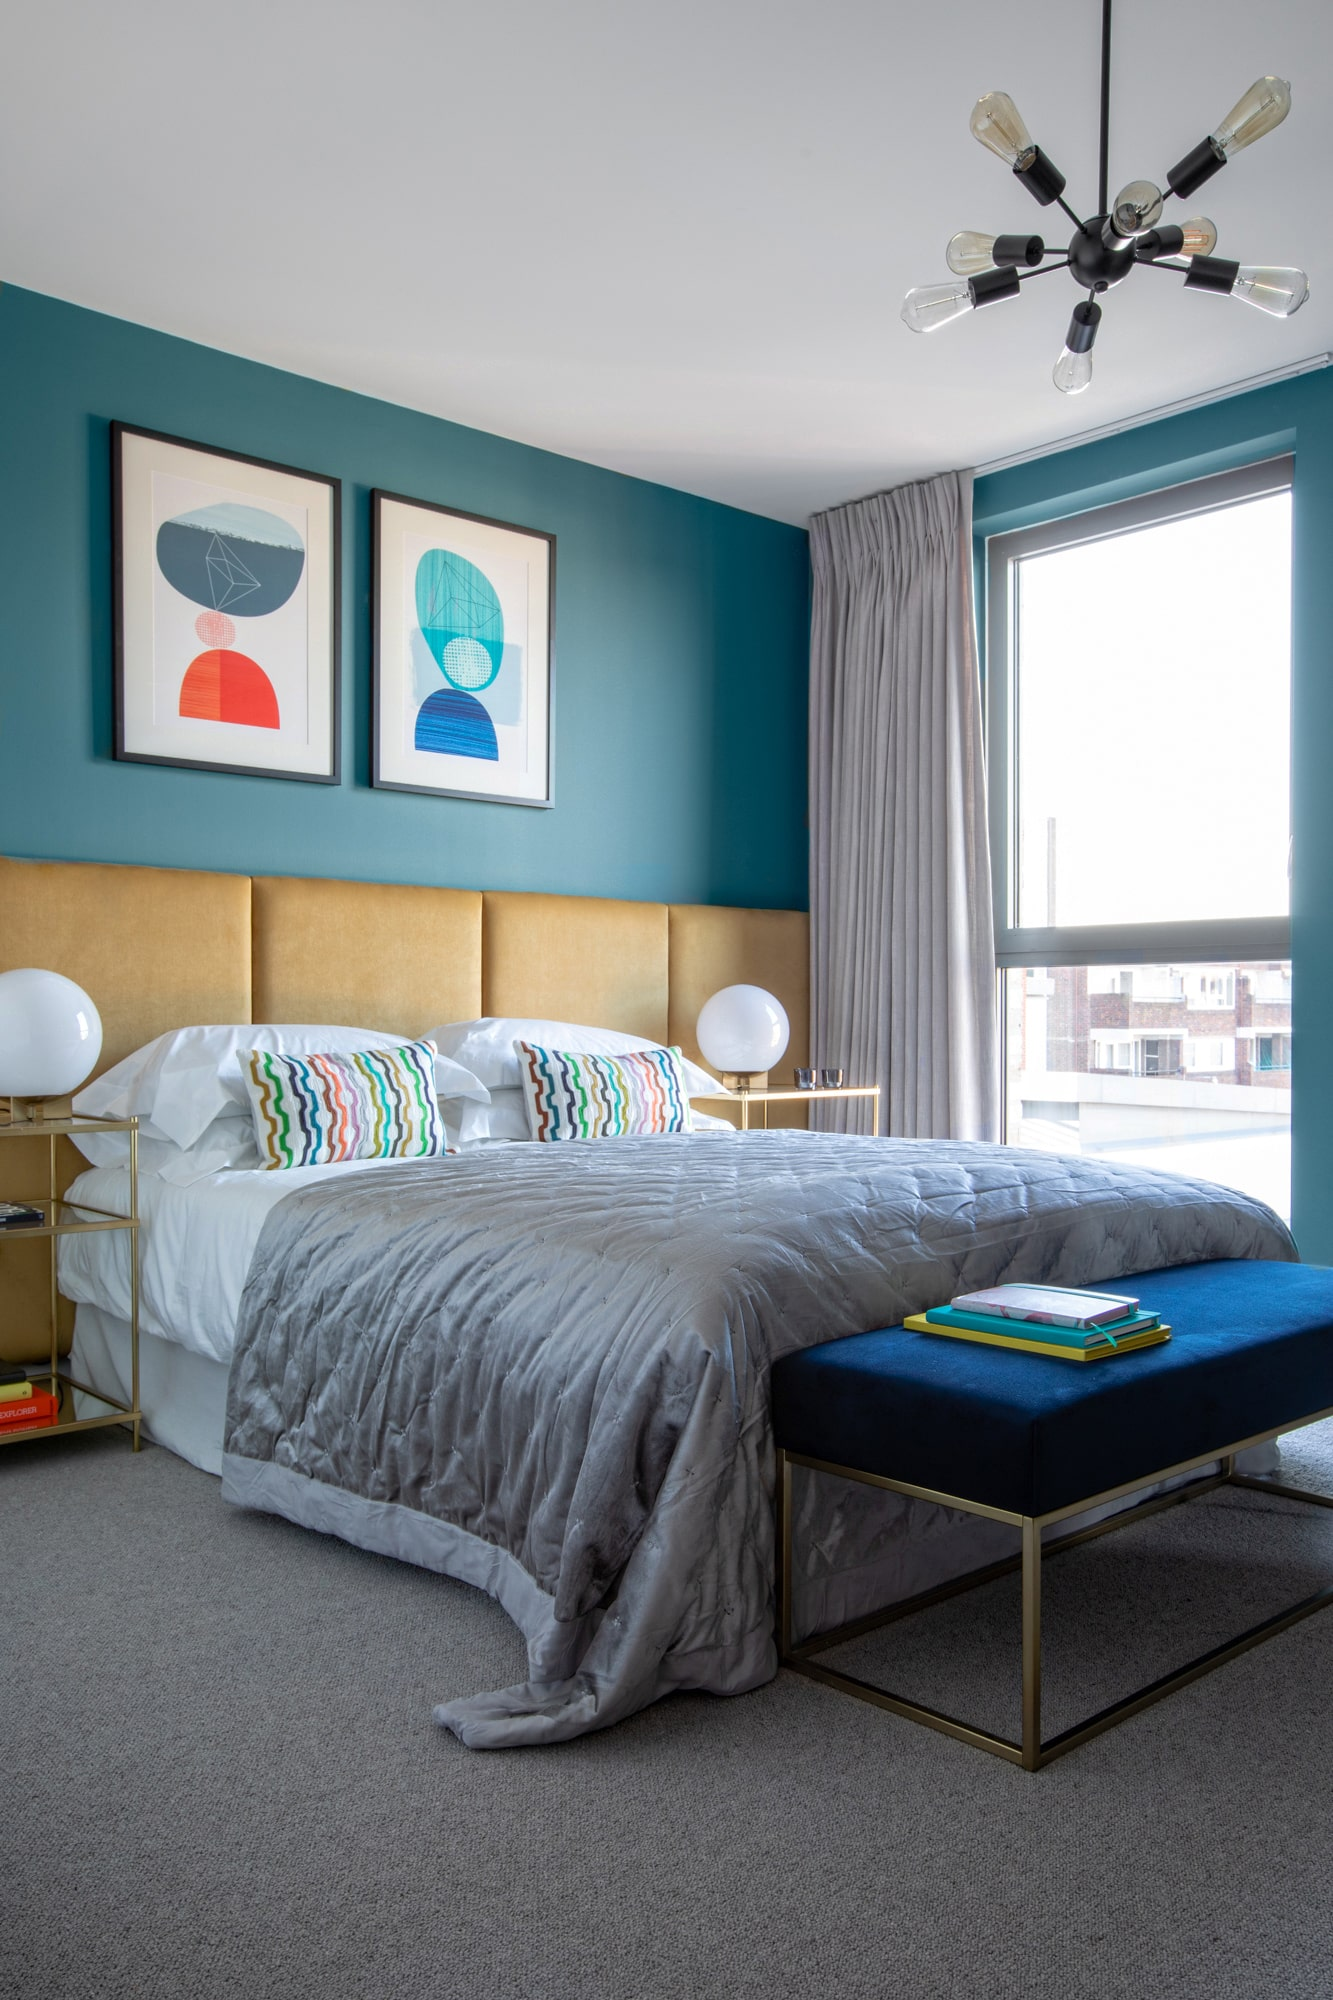 Interior design photo: bedrooms with teal walls; yellow bed; abstract art; blue velvet bench